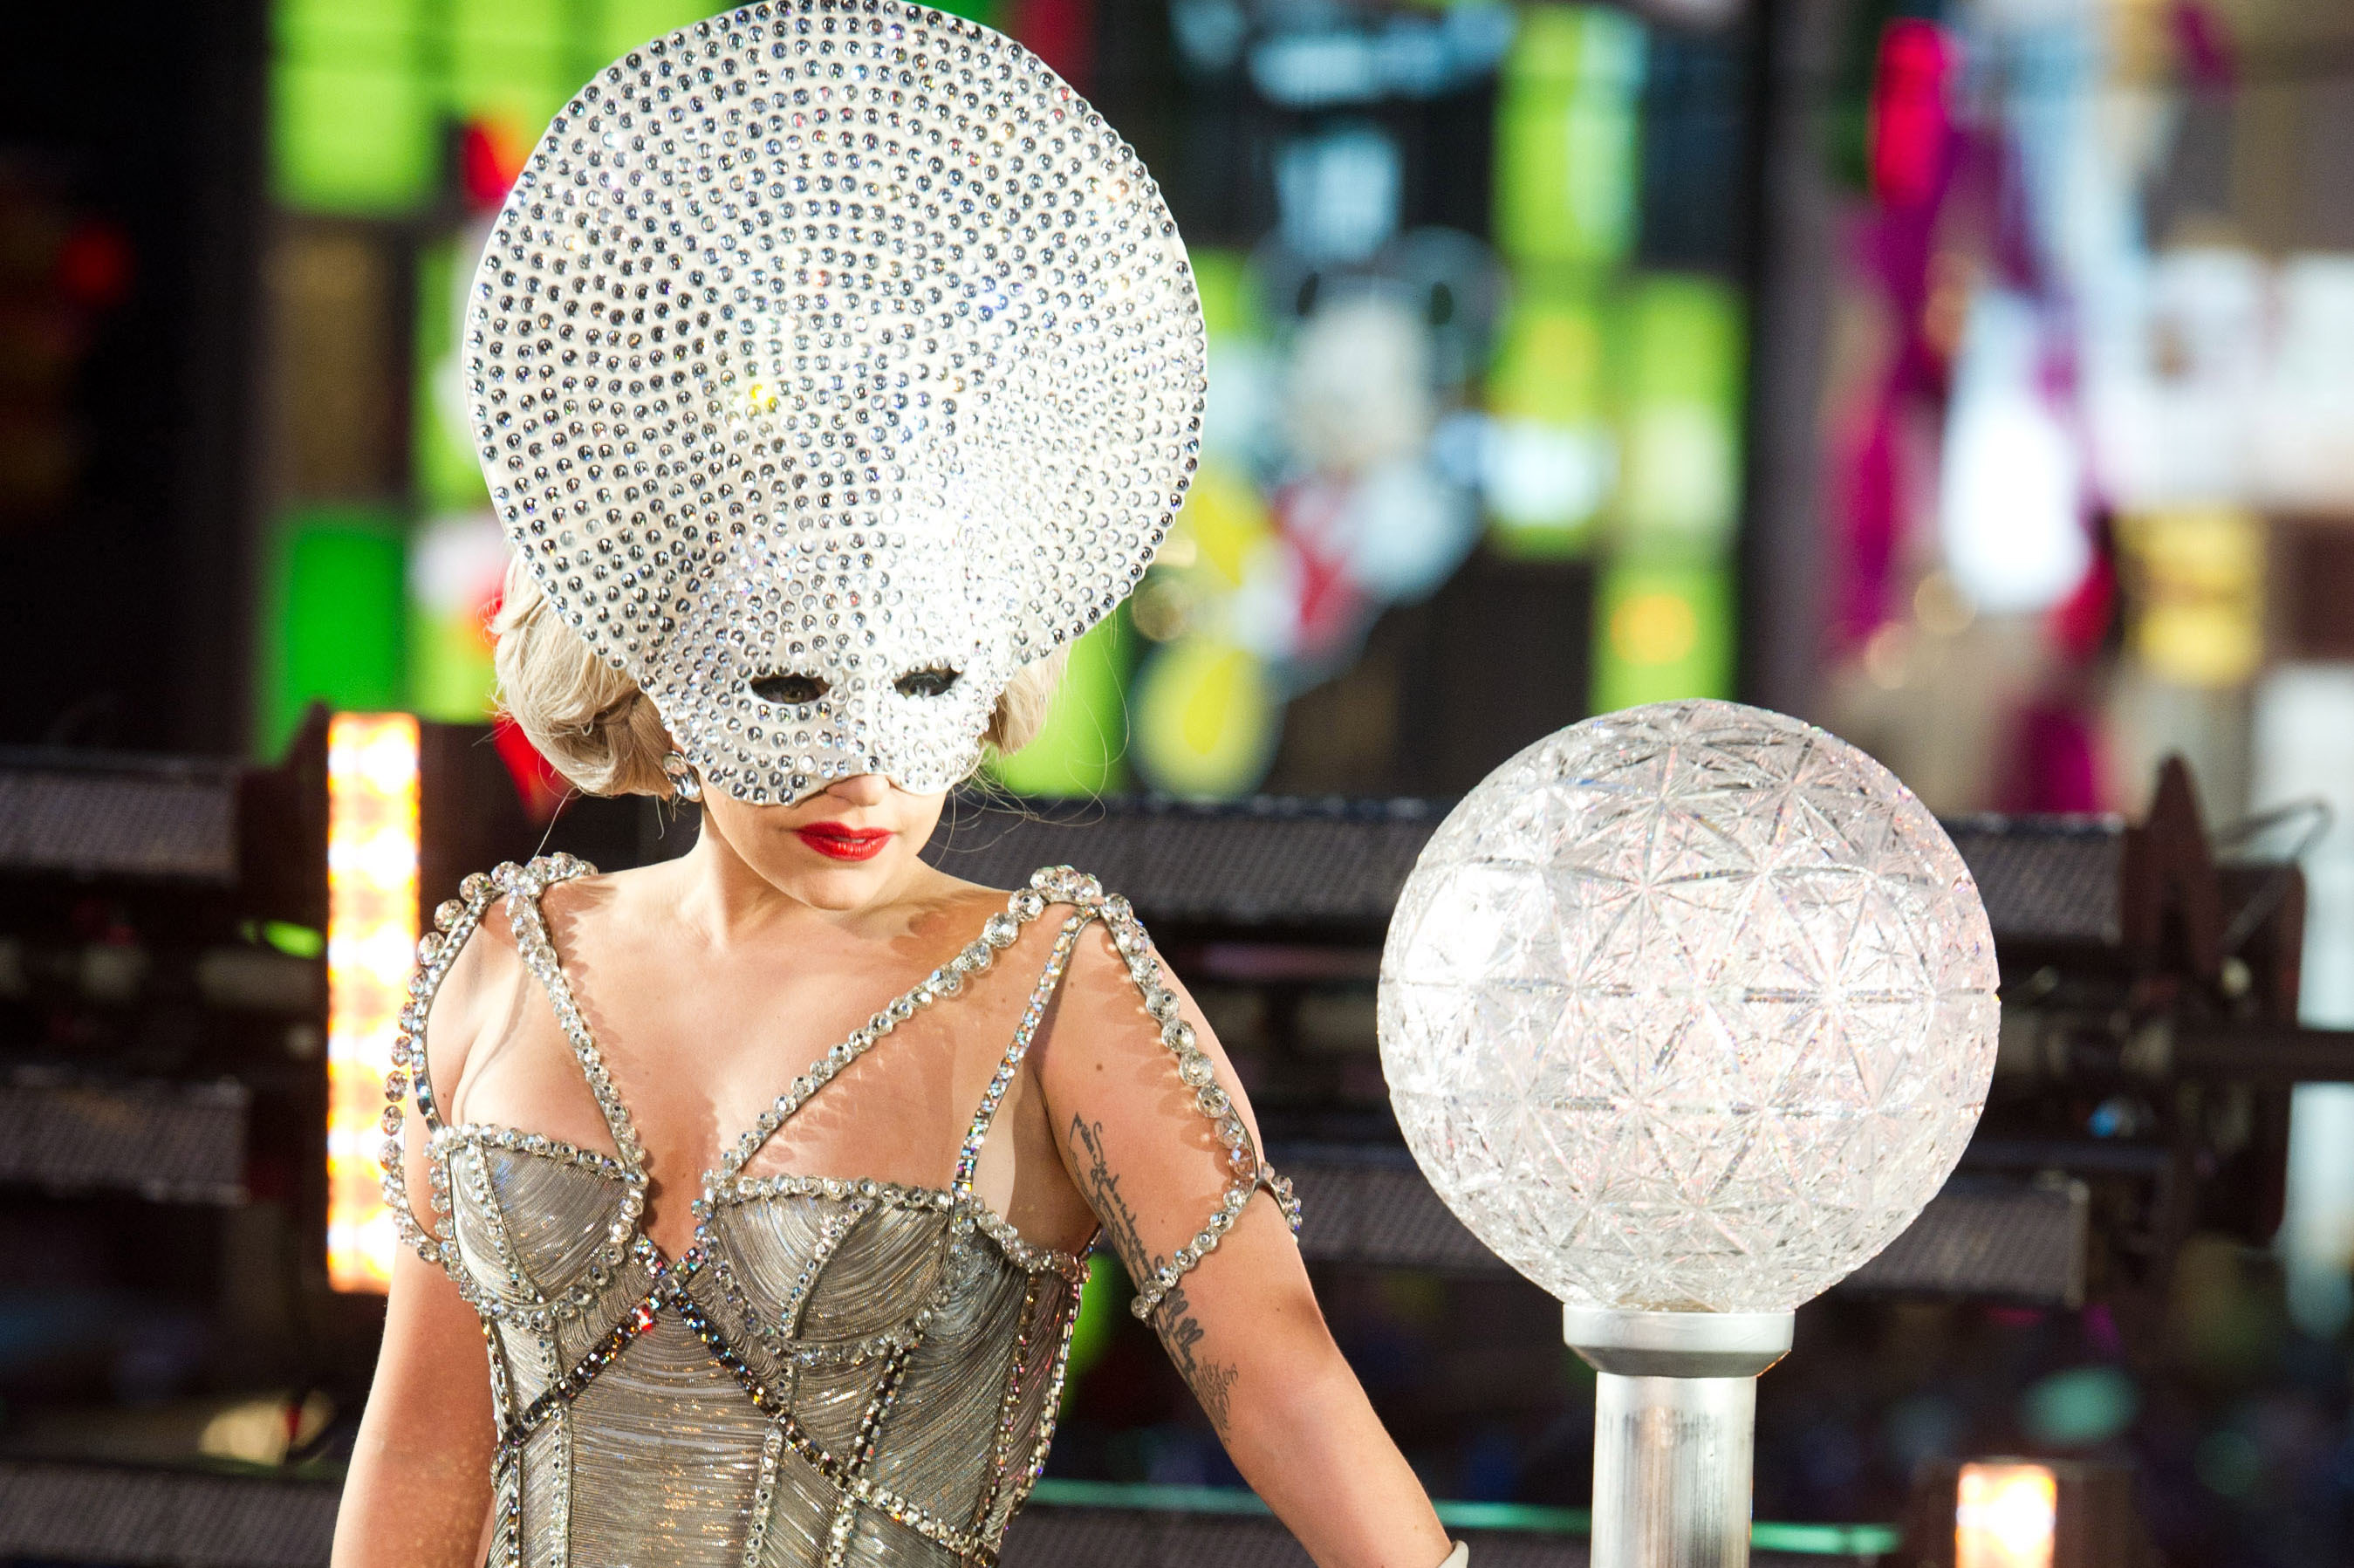 The only thing that makes less sense than dropping a ball on New Year's Eve is Lady Gaga dressing as the ball to officiate the ball-dropping.